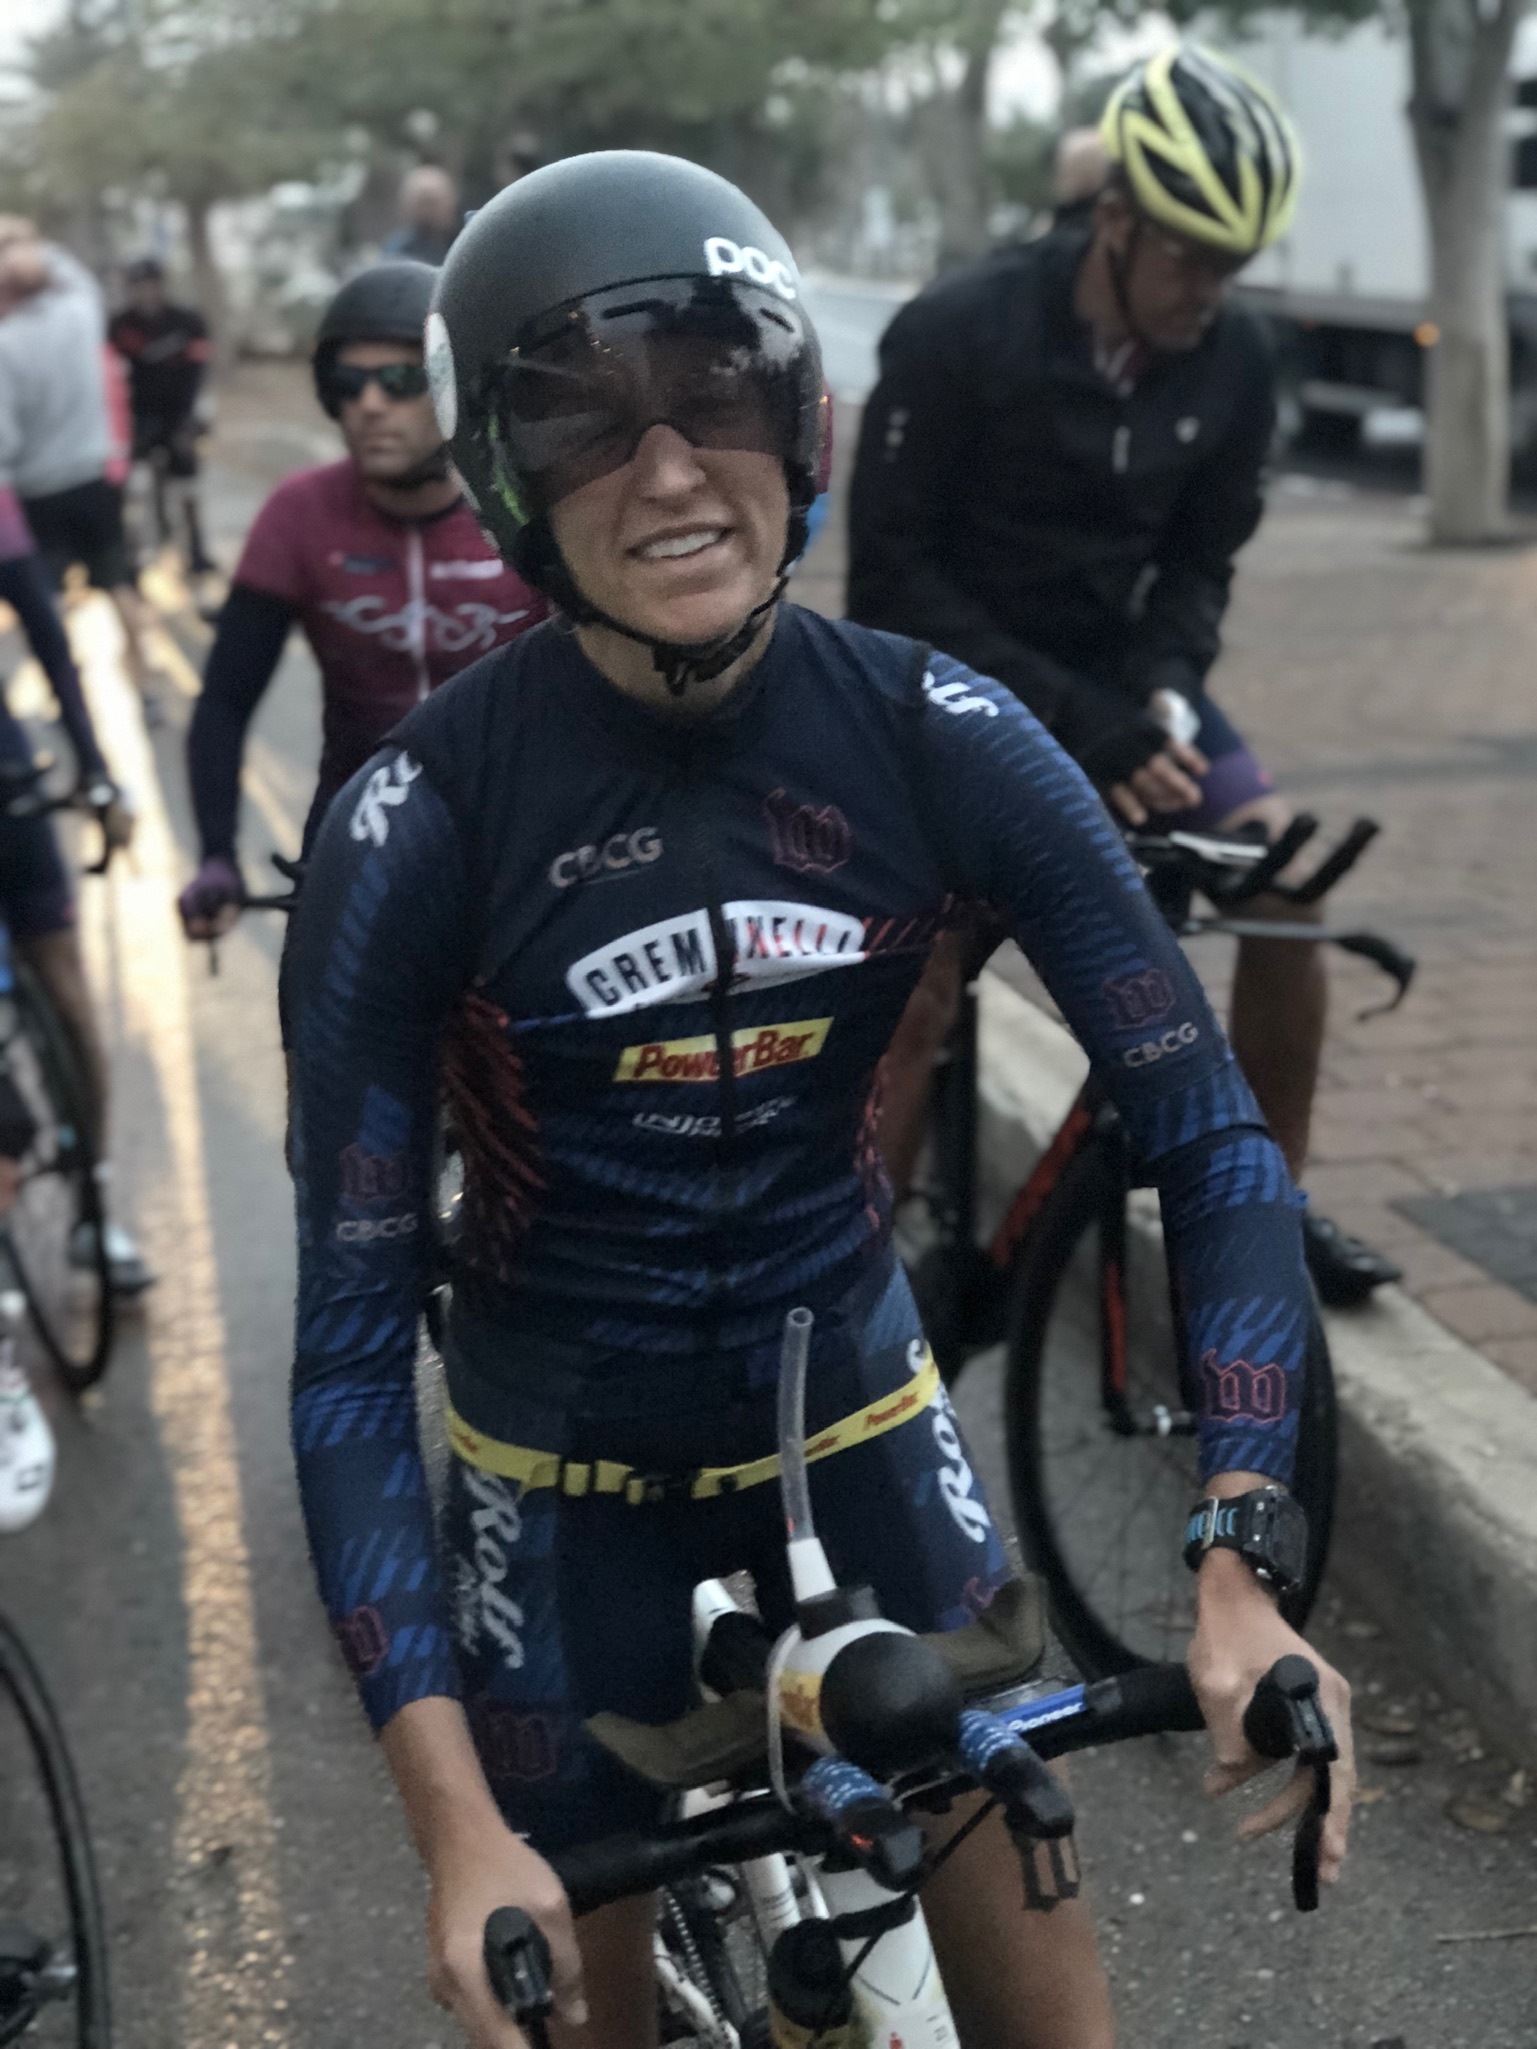 Coach_Terry_Wilson_Pursuit_of_The_Perfect_Race_Ultram_Isereal_Amy_VT_Overall_Winer_Bike_4.JPG